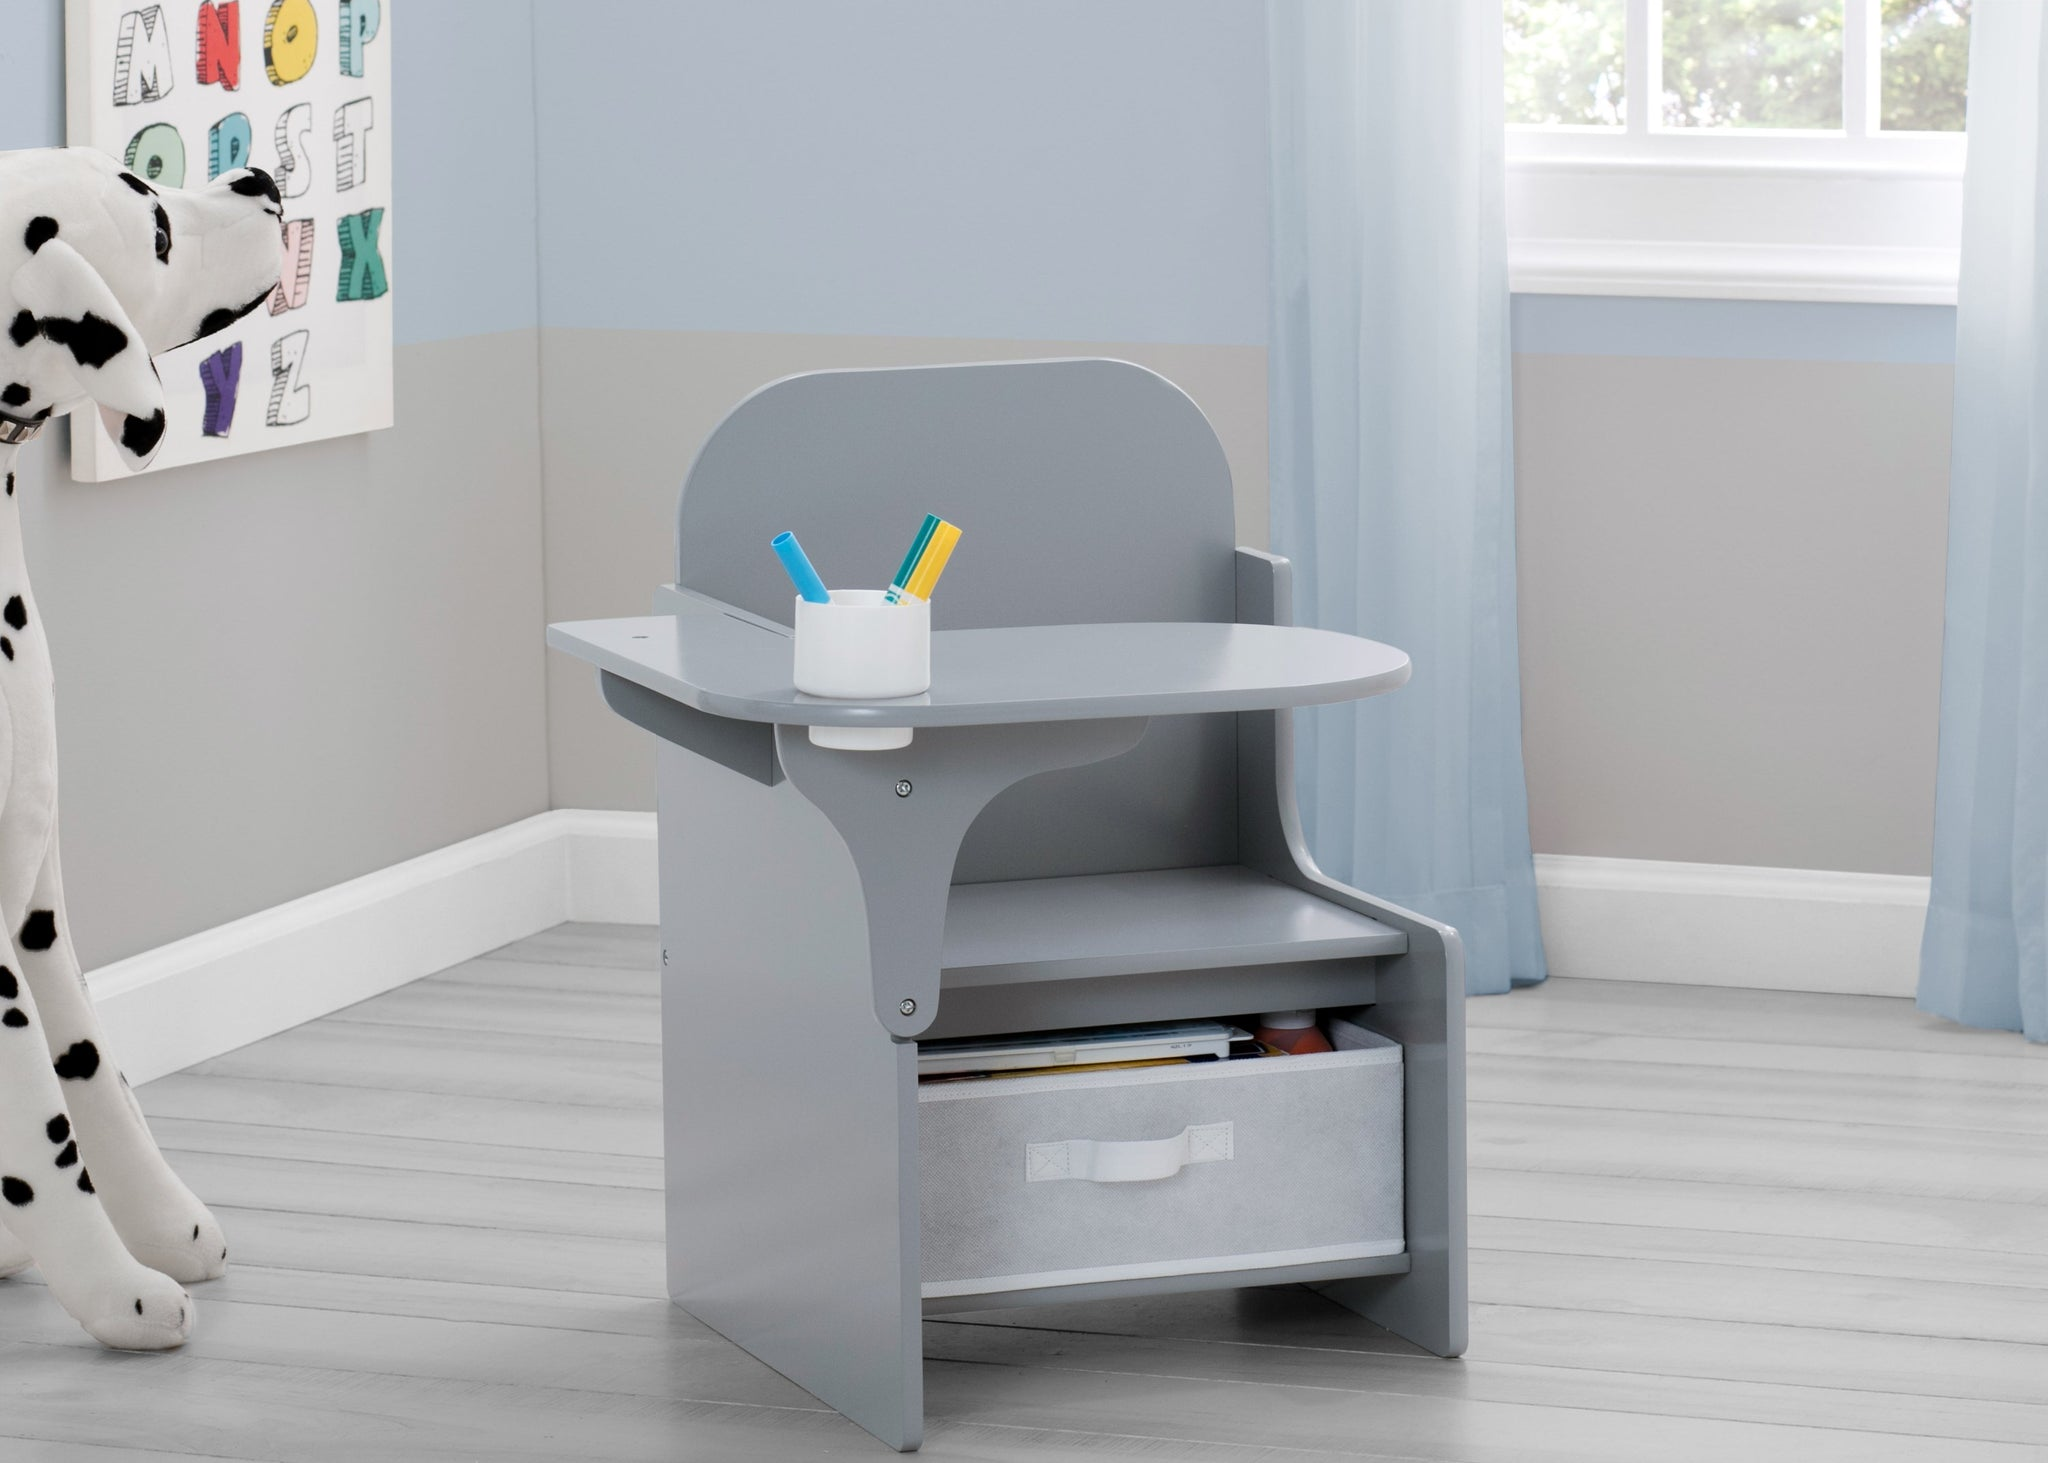 Delta Children MySize Chair Desk Grey (026) Hangtag View